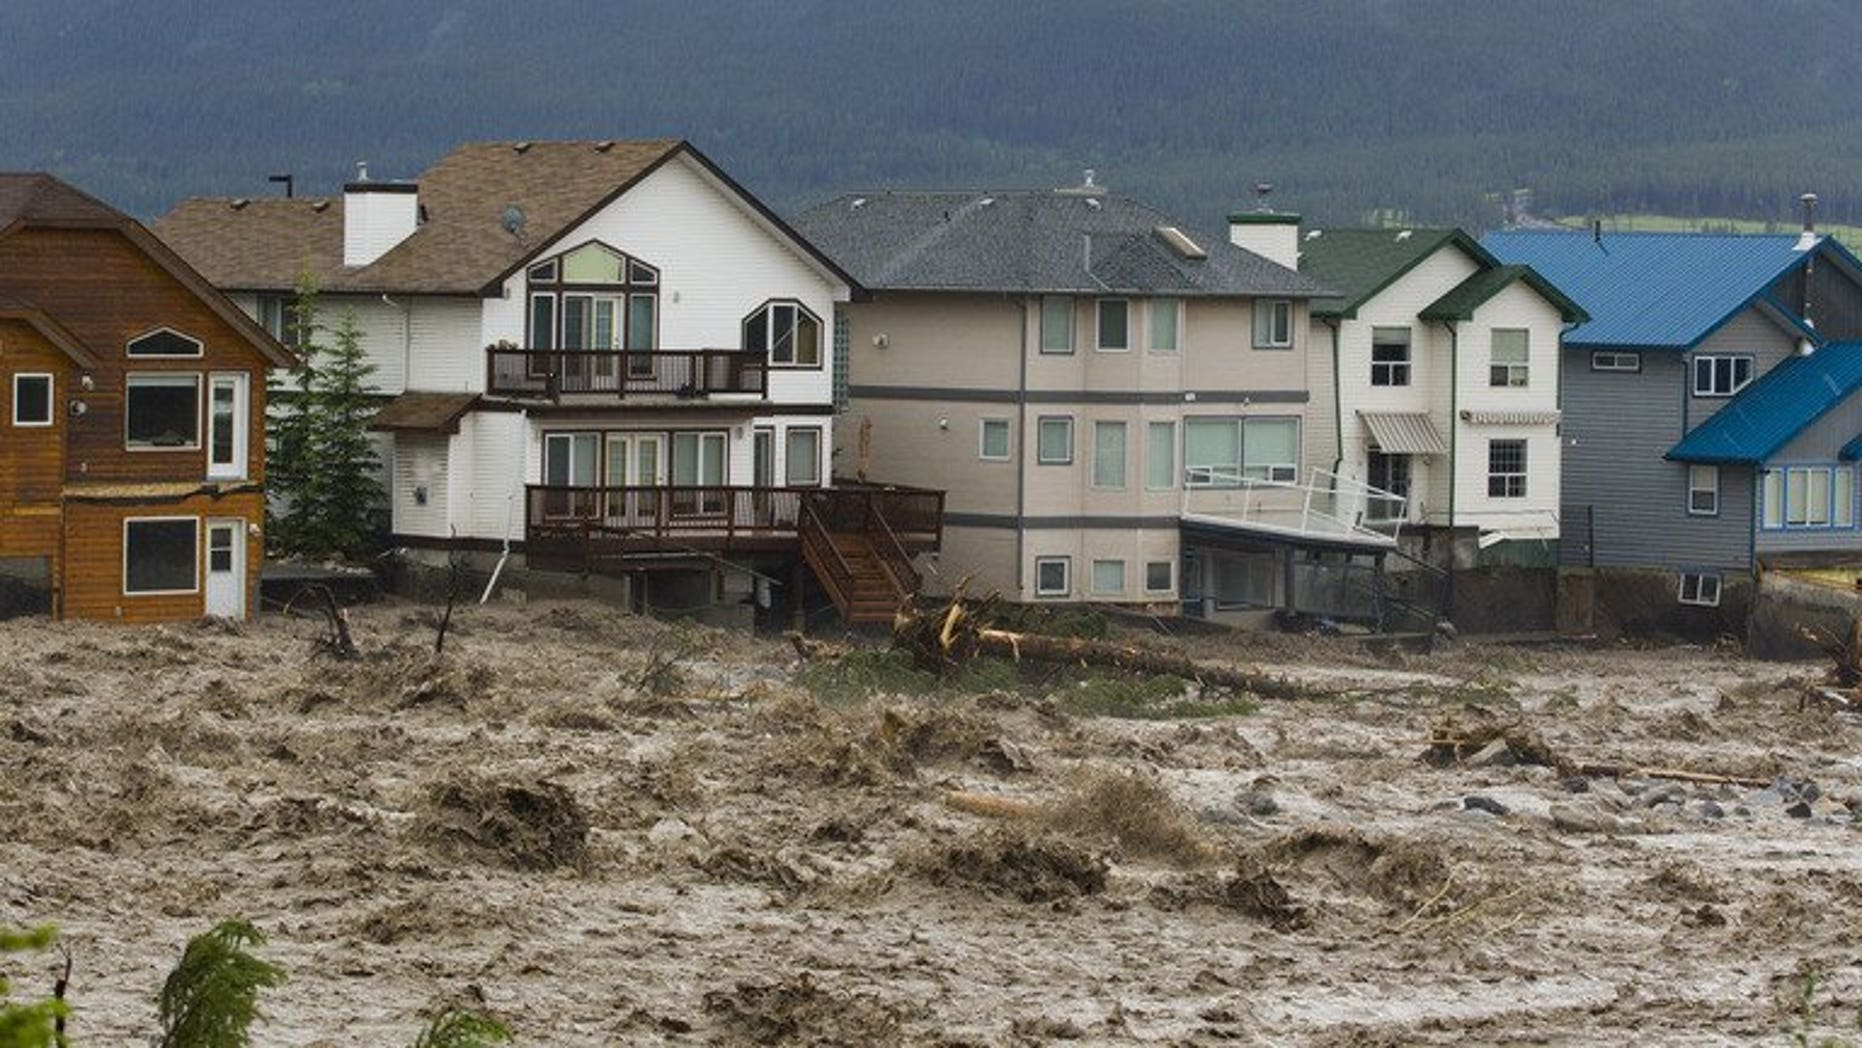 Damaged houses along the edge of floodwaters in Cougar Creek in Canmore, Alberta, western Canada pictured on June 20, 2013. Flooding forced the evacuation on Friday of some 100,000 people in Calgary and nearby towns in the heart of the Canadian oil patch in Alberta.